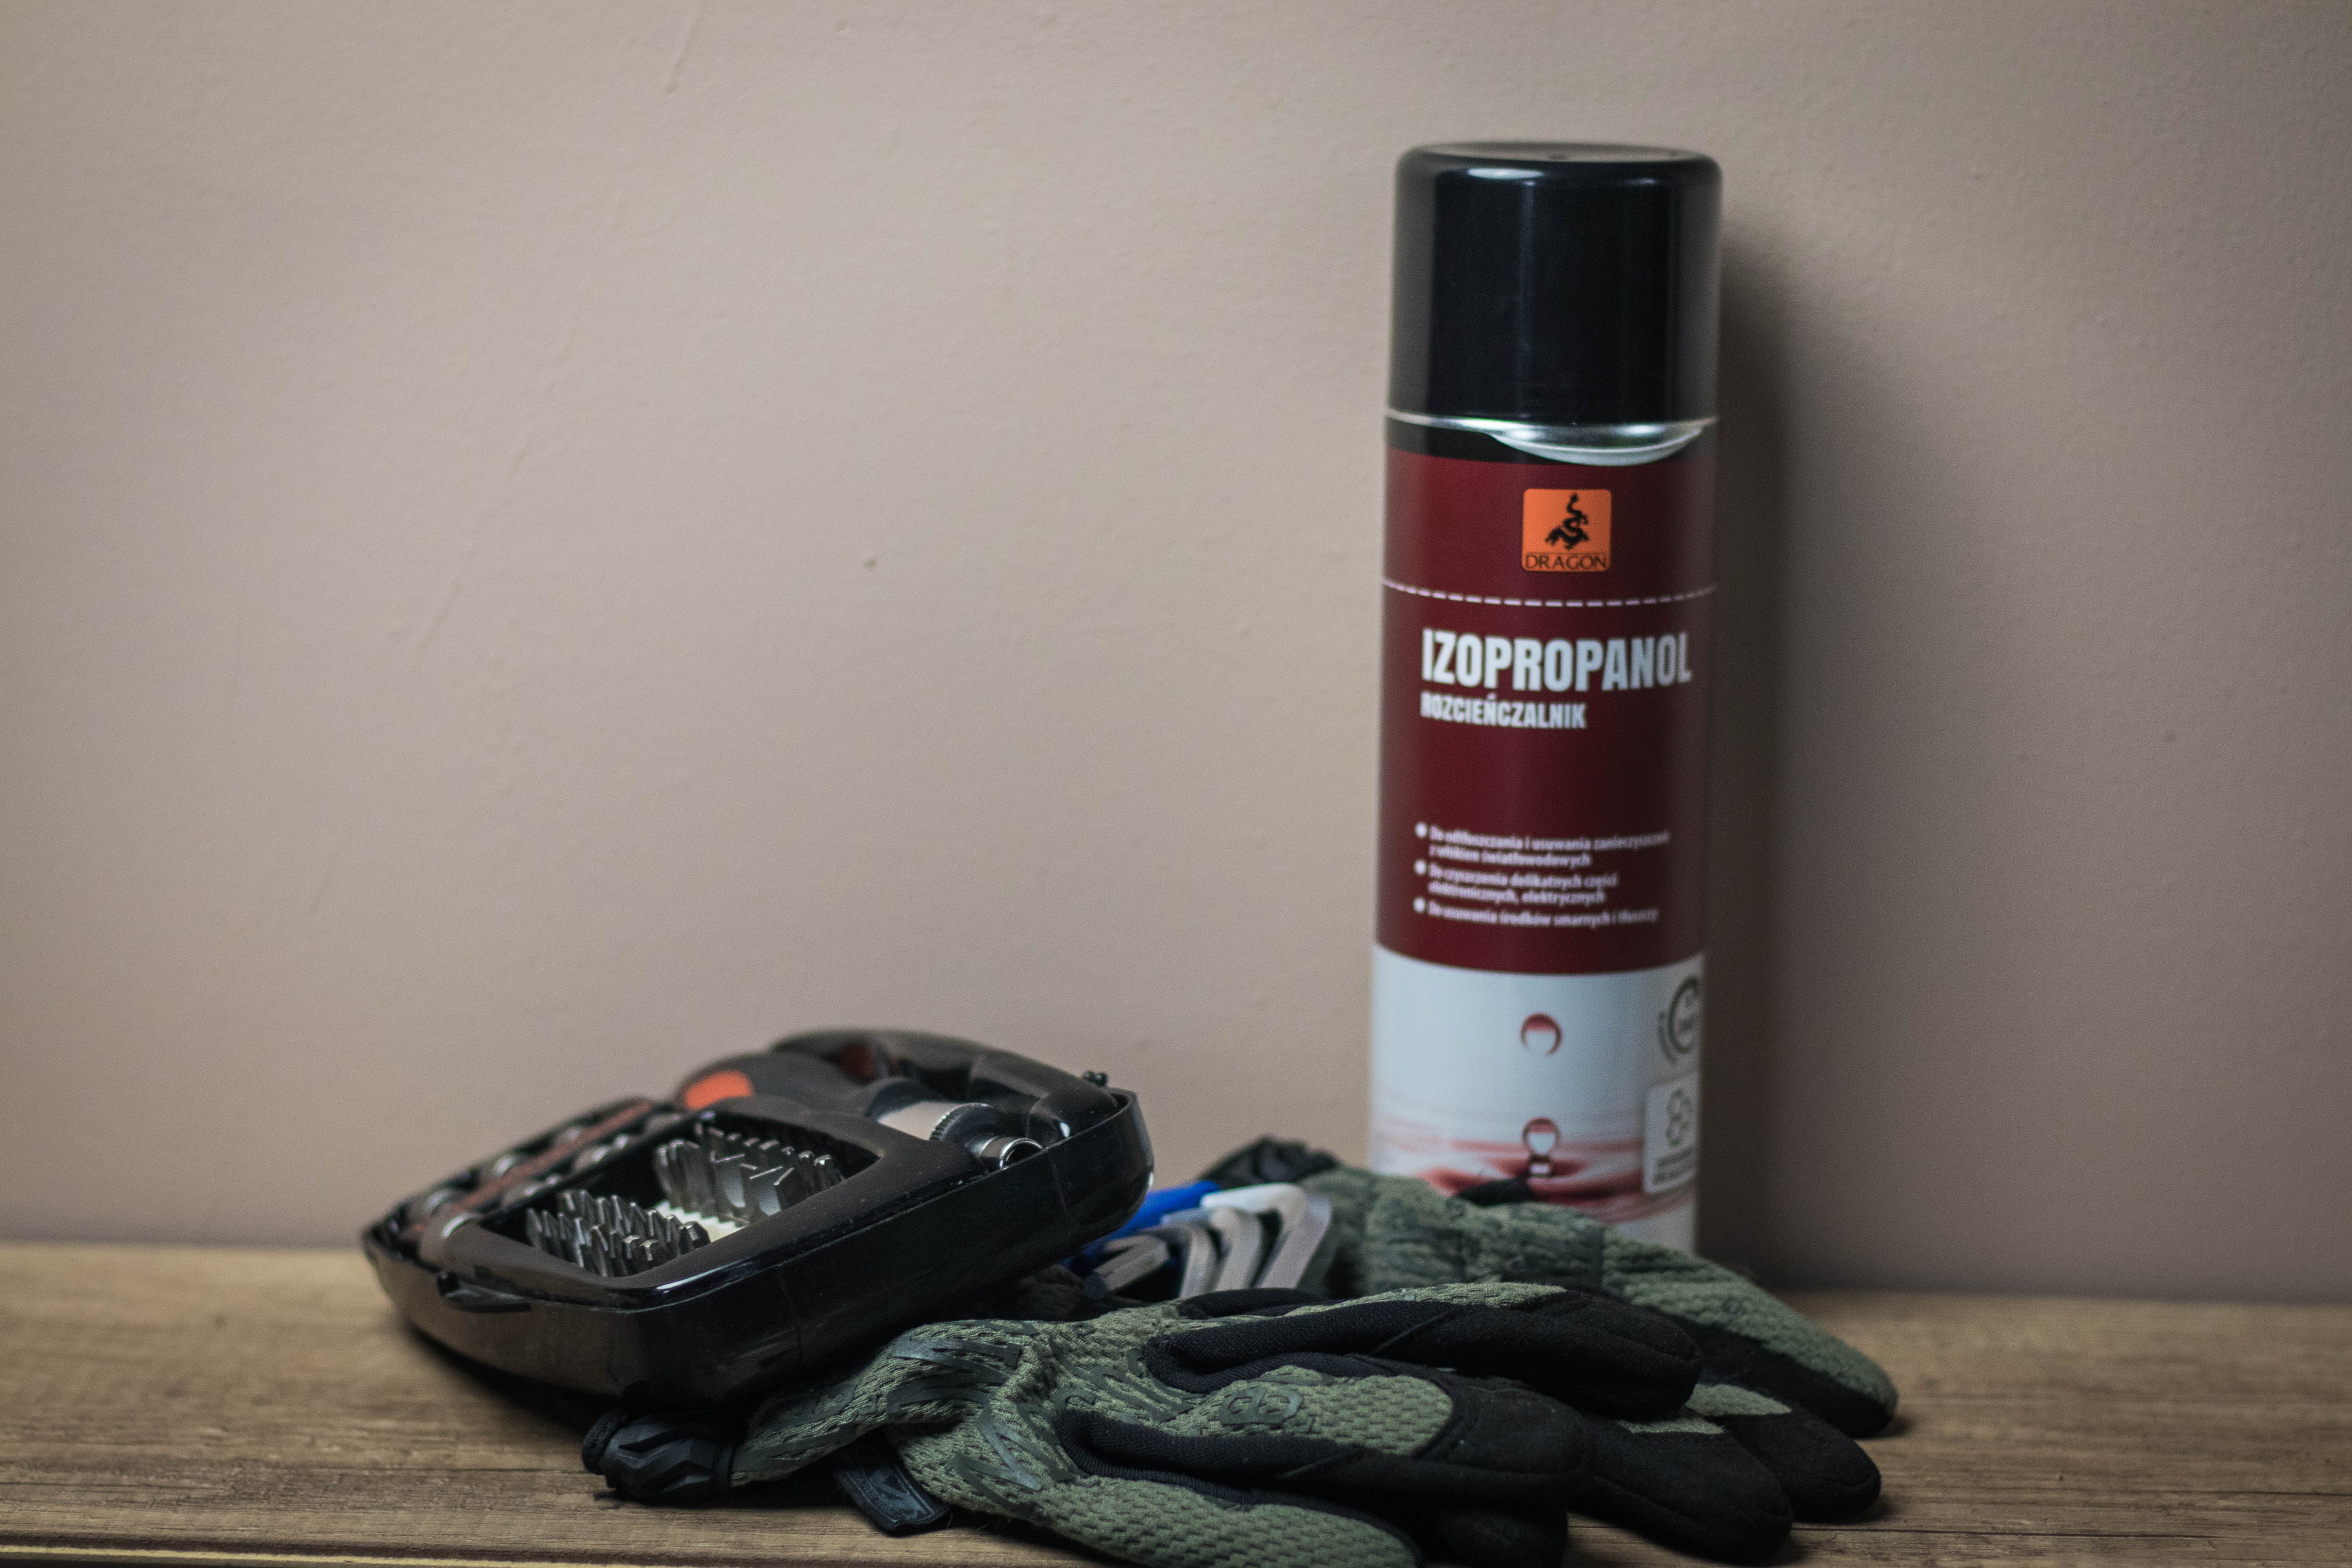 gloves, agent, screwdrivers, knee pads